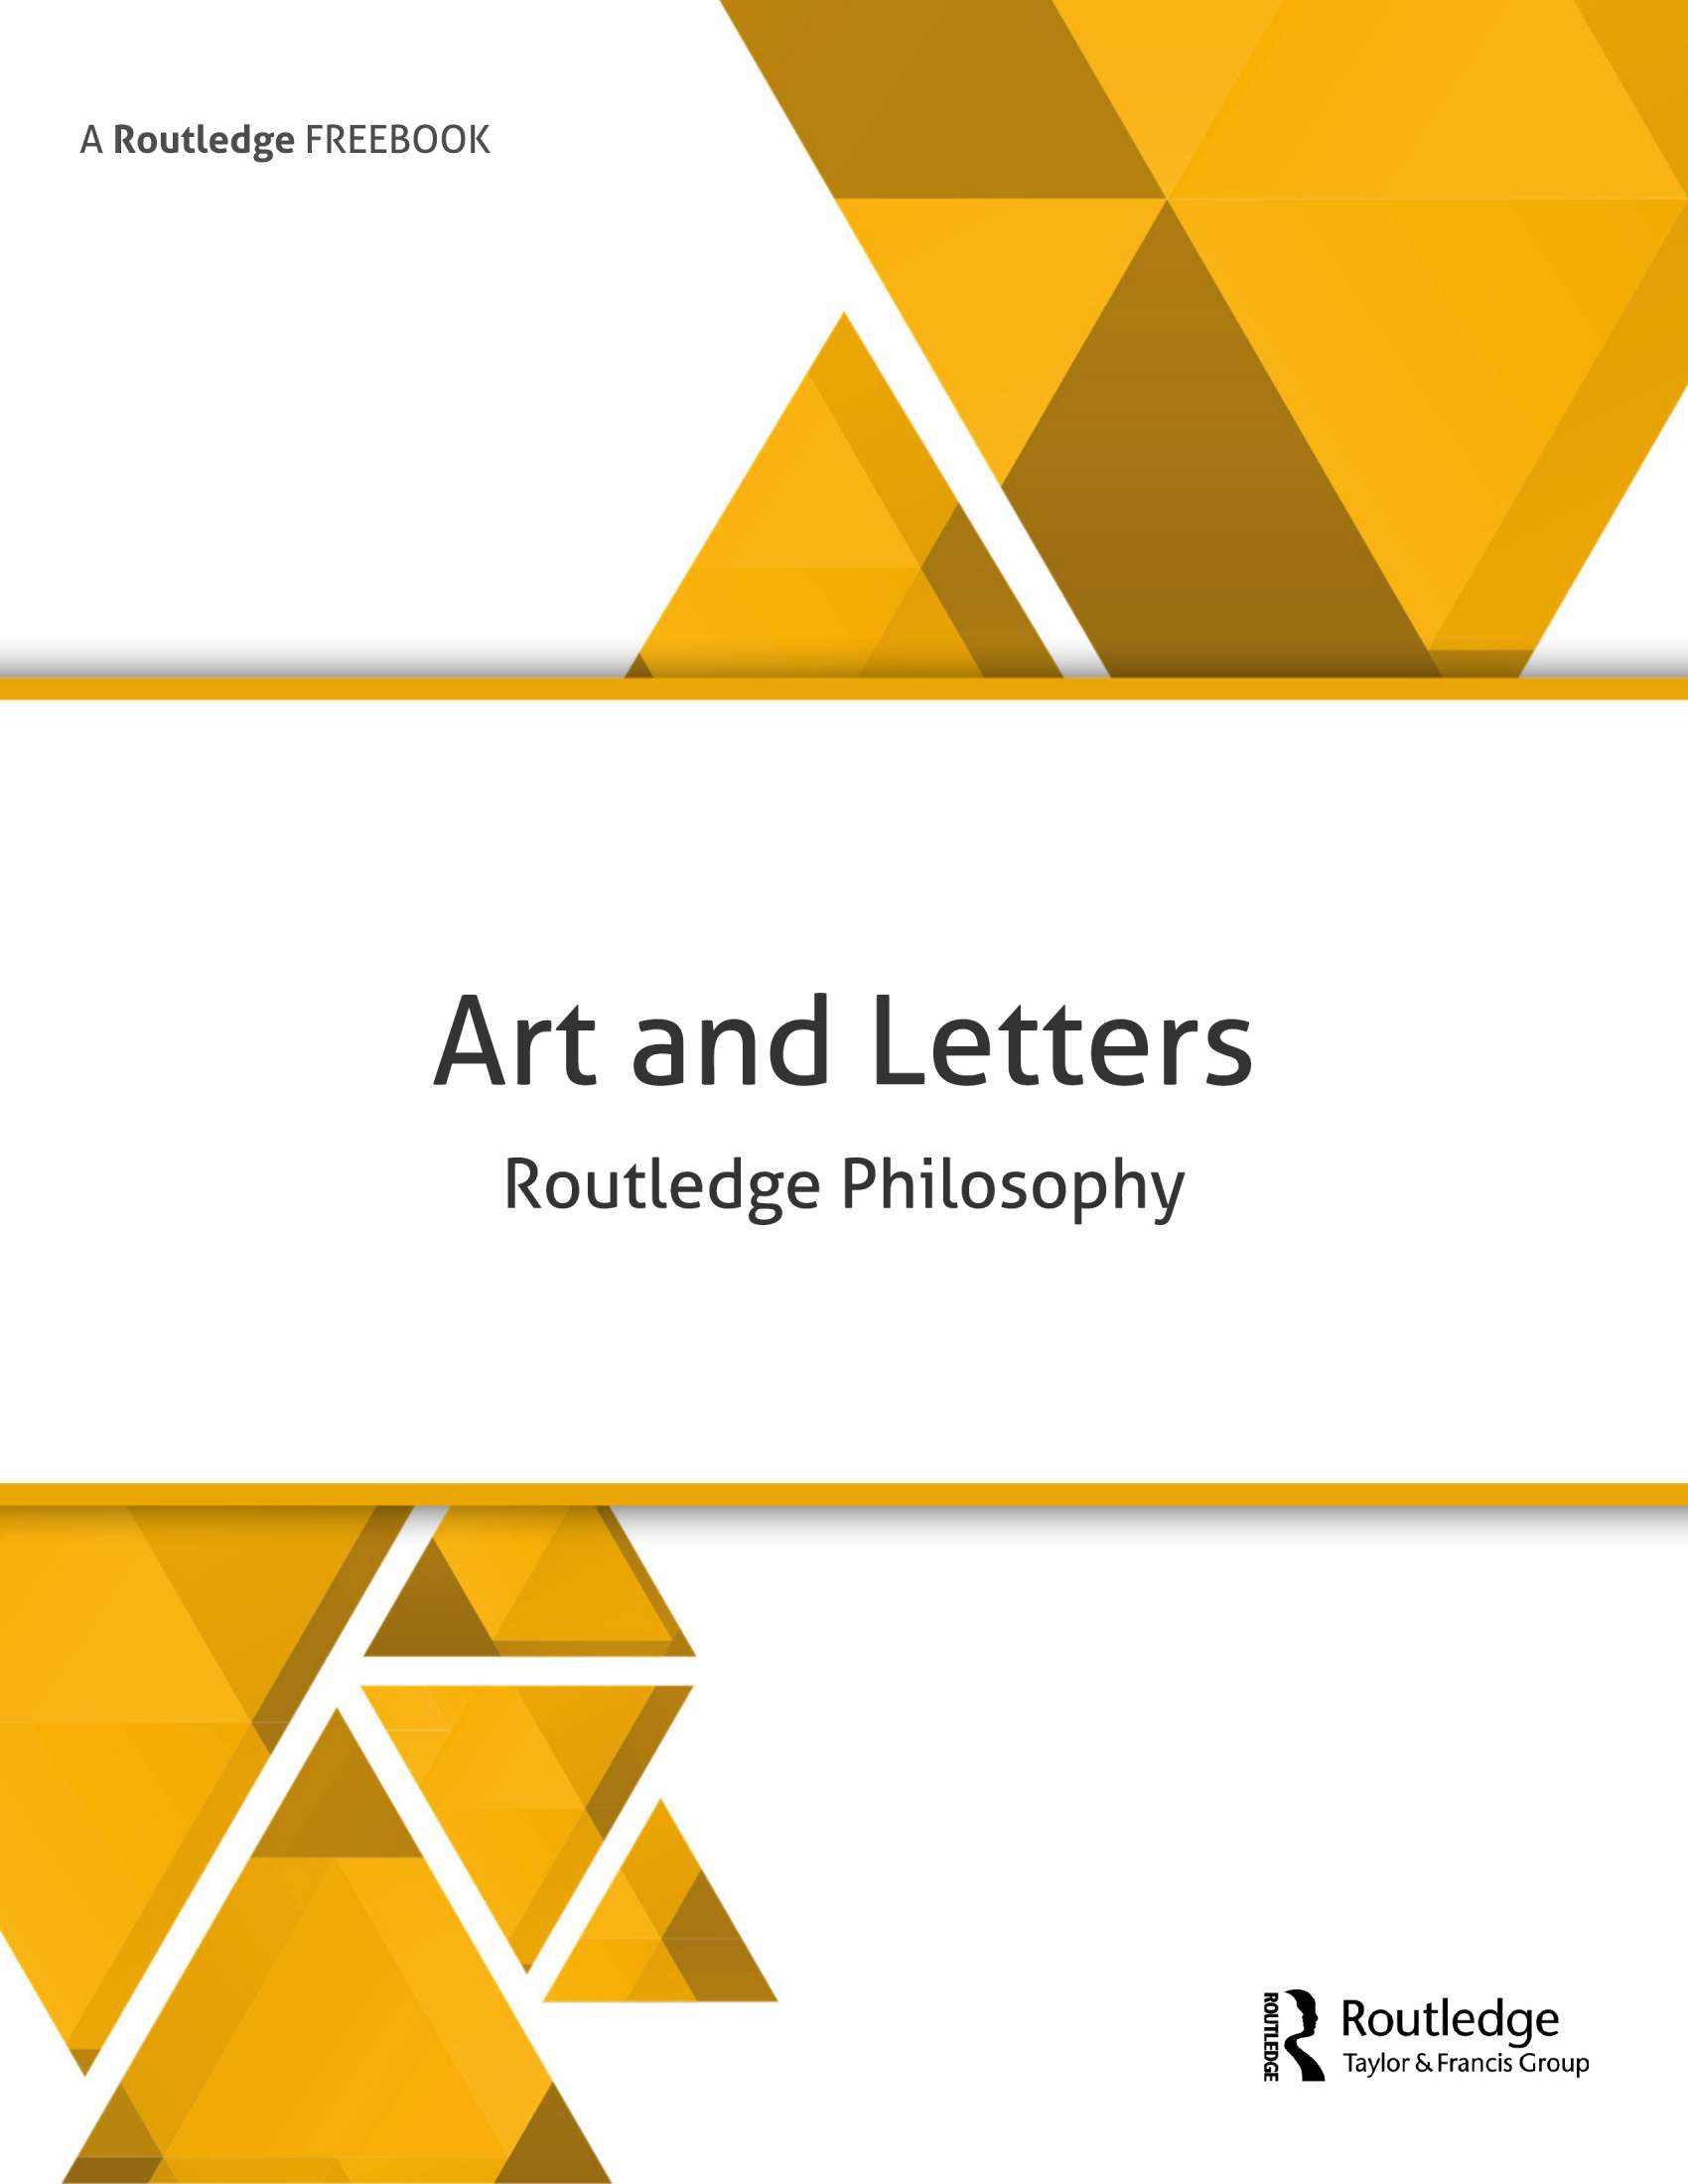 Art and Letters Freebook